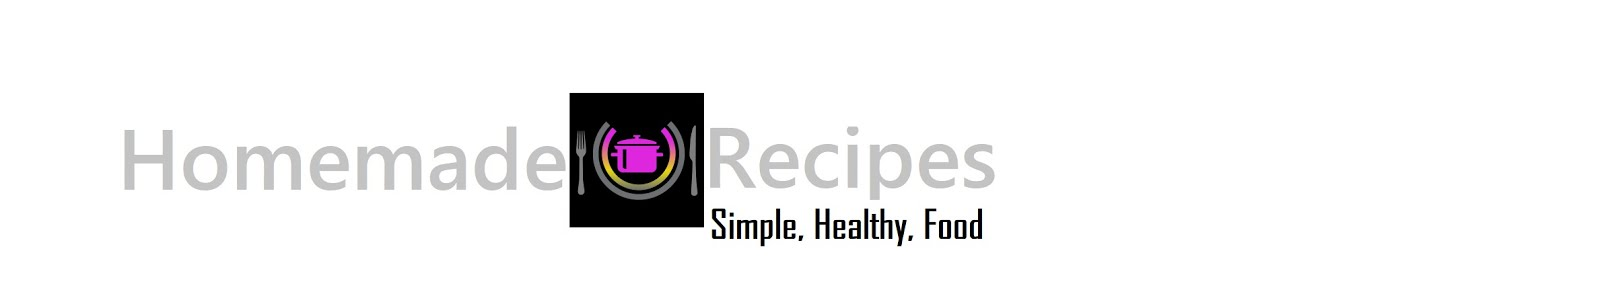 Homemade Recipes